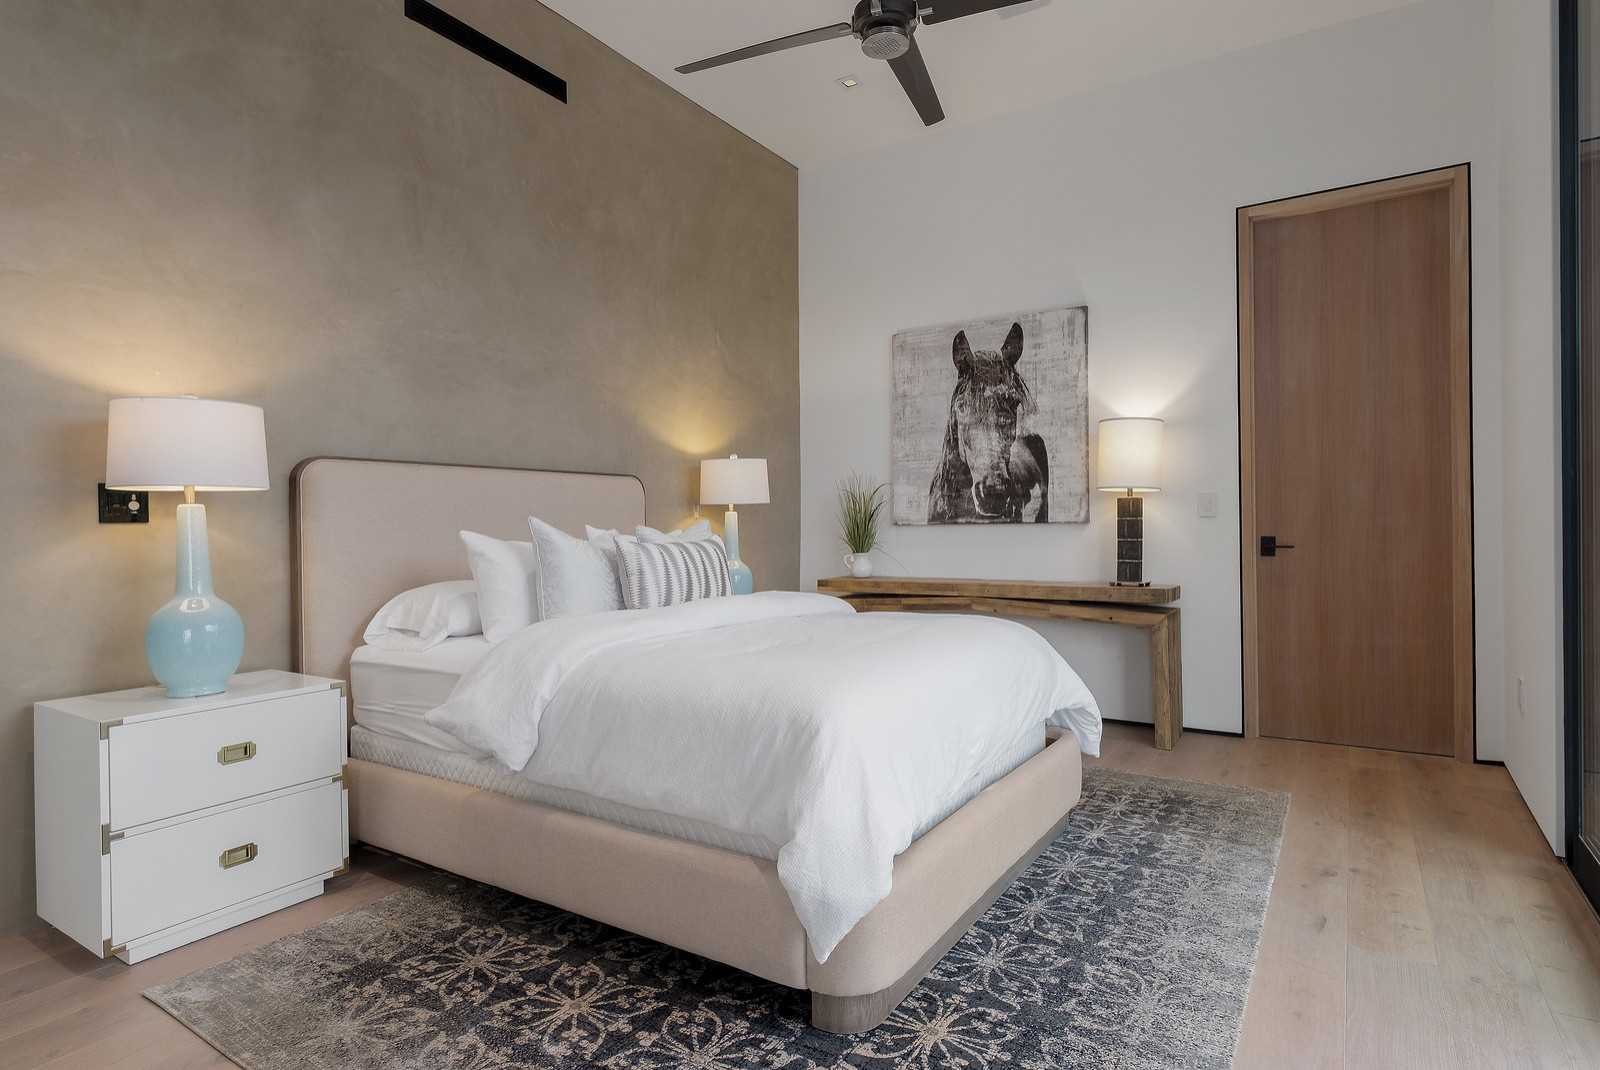 75 Beautiful Gray Bedroom Pictures Ideas February 2021 Houzz